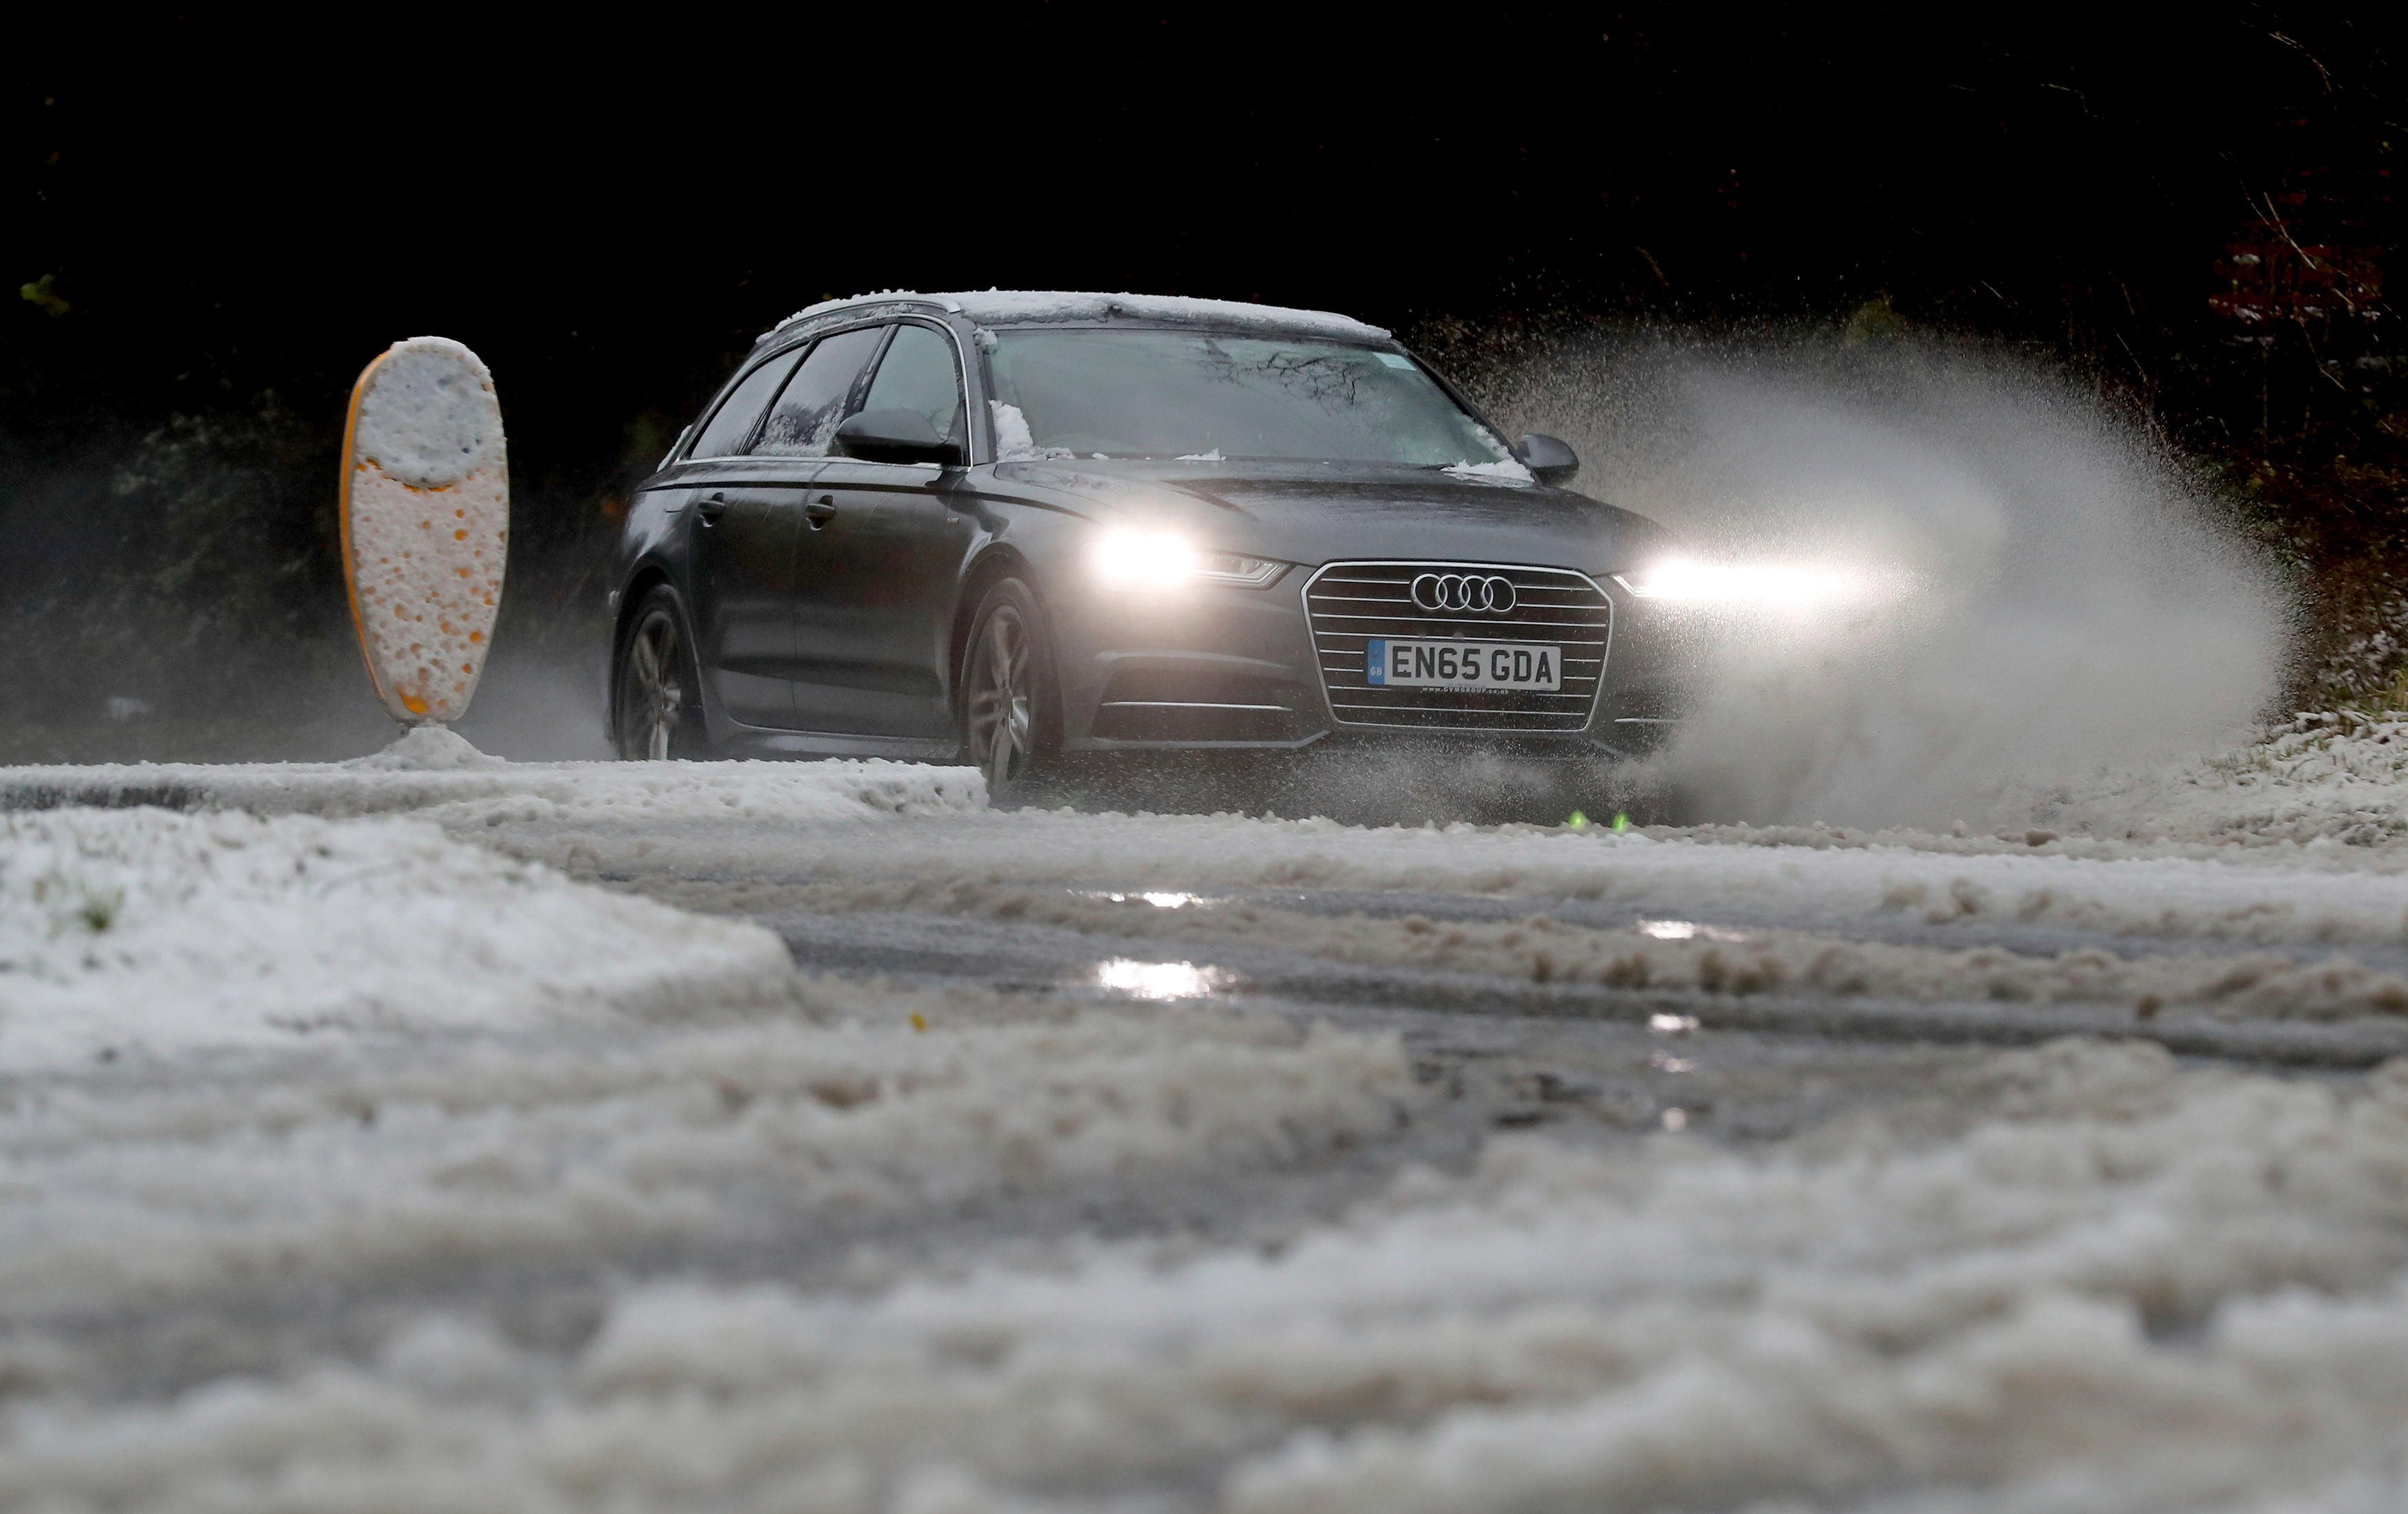 A car negotiates its way through hazardous road conditions in Canterbury, England, after heavy snow fell across parts of the UK, Sunday Dec. 10, 2017.  Snow and freezing weather is causing travel disruptions across central England and northern Wales, grounding some flights and shutting down roads. (Gareth Fuller/PA via AP)